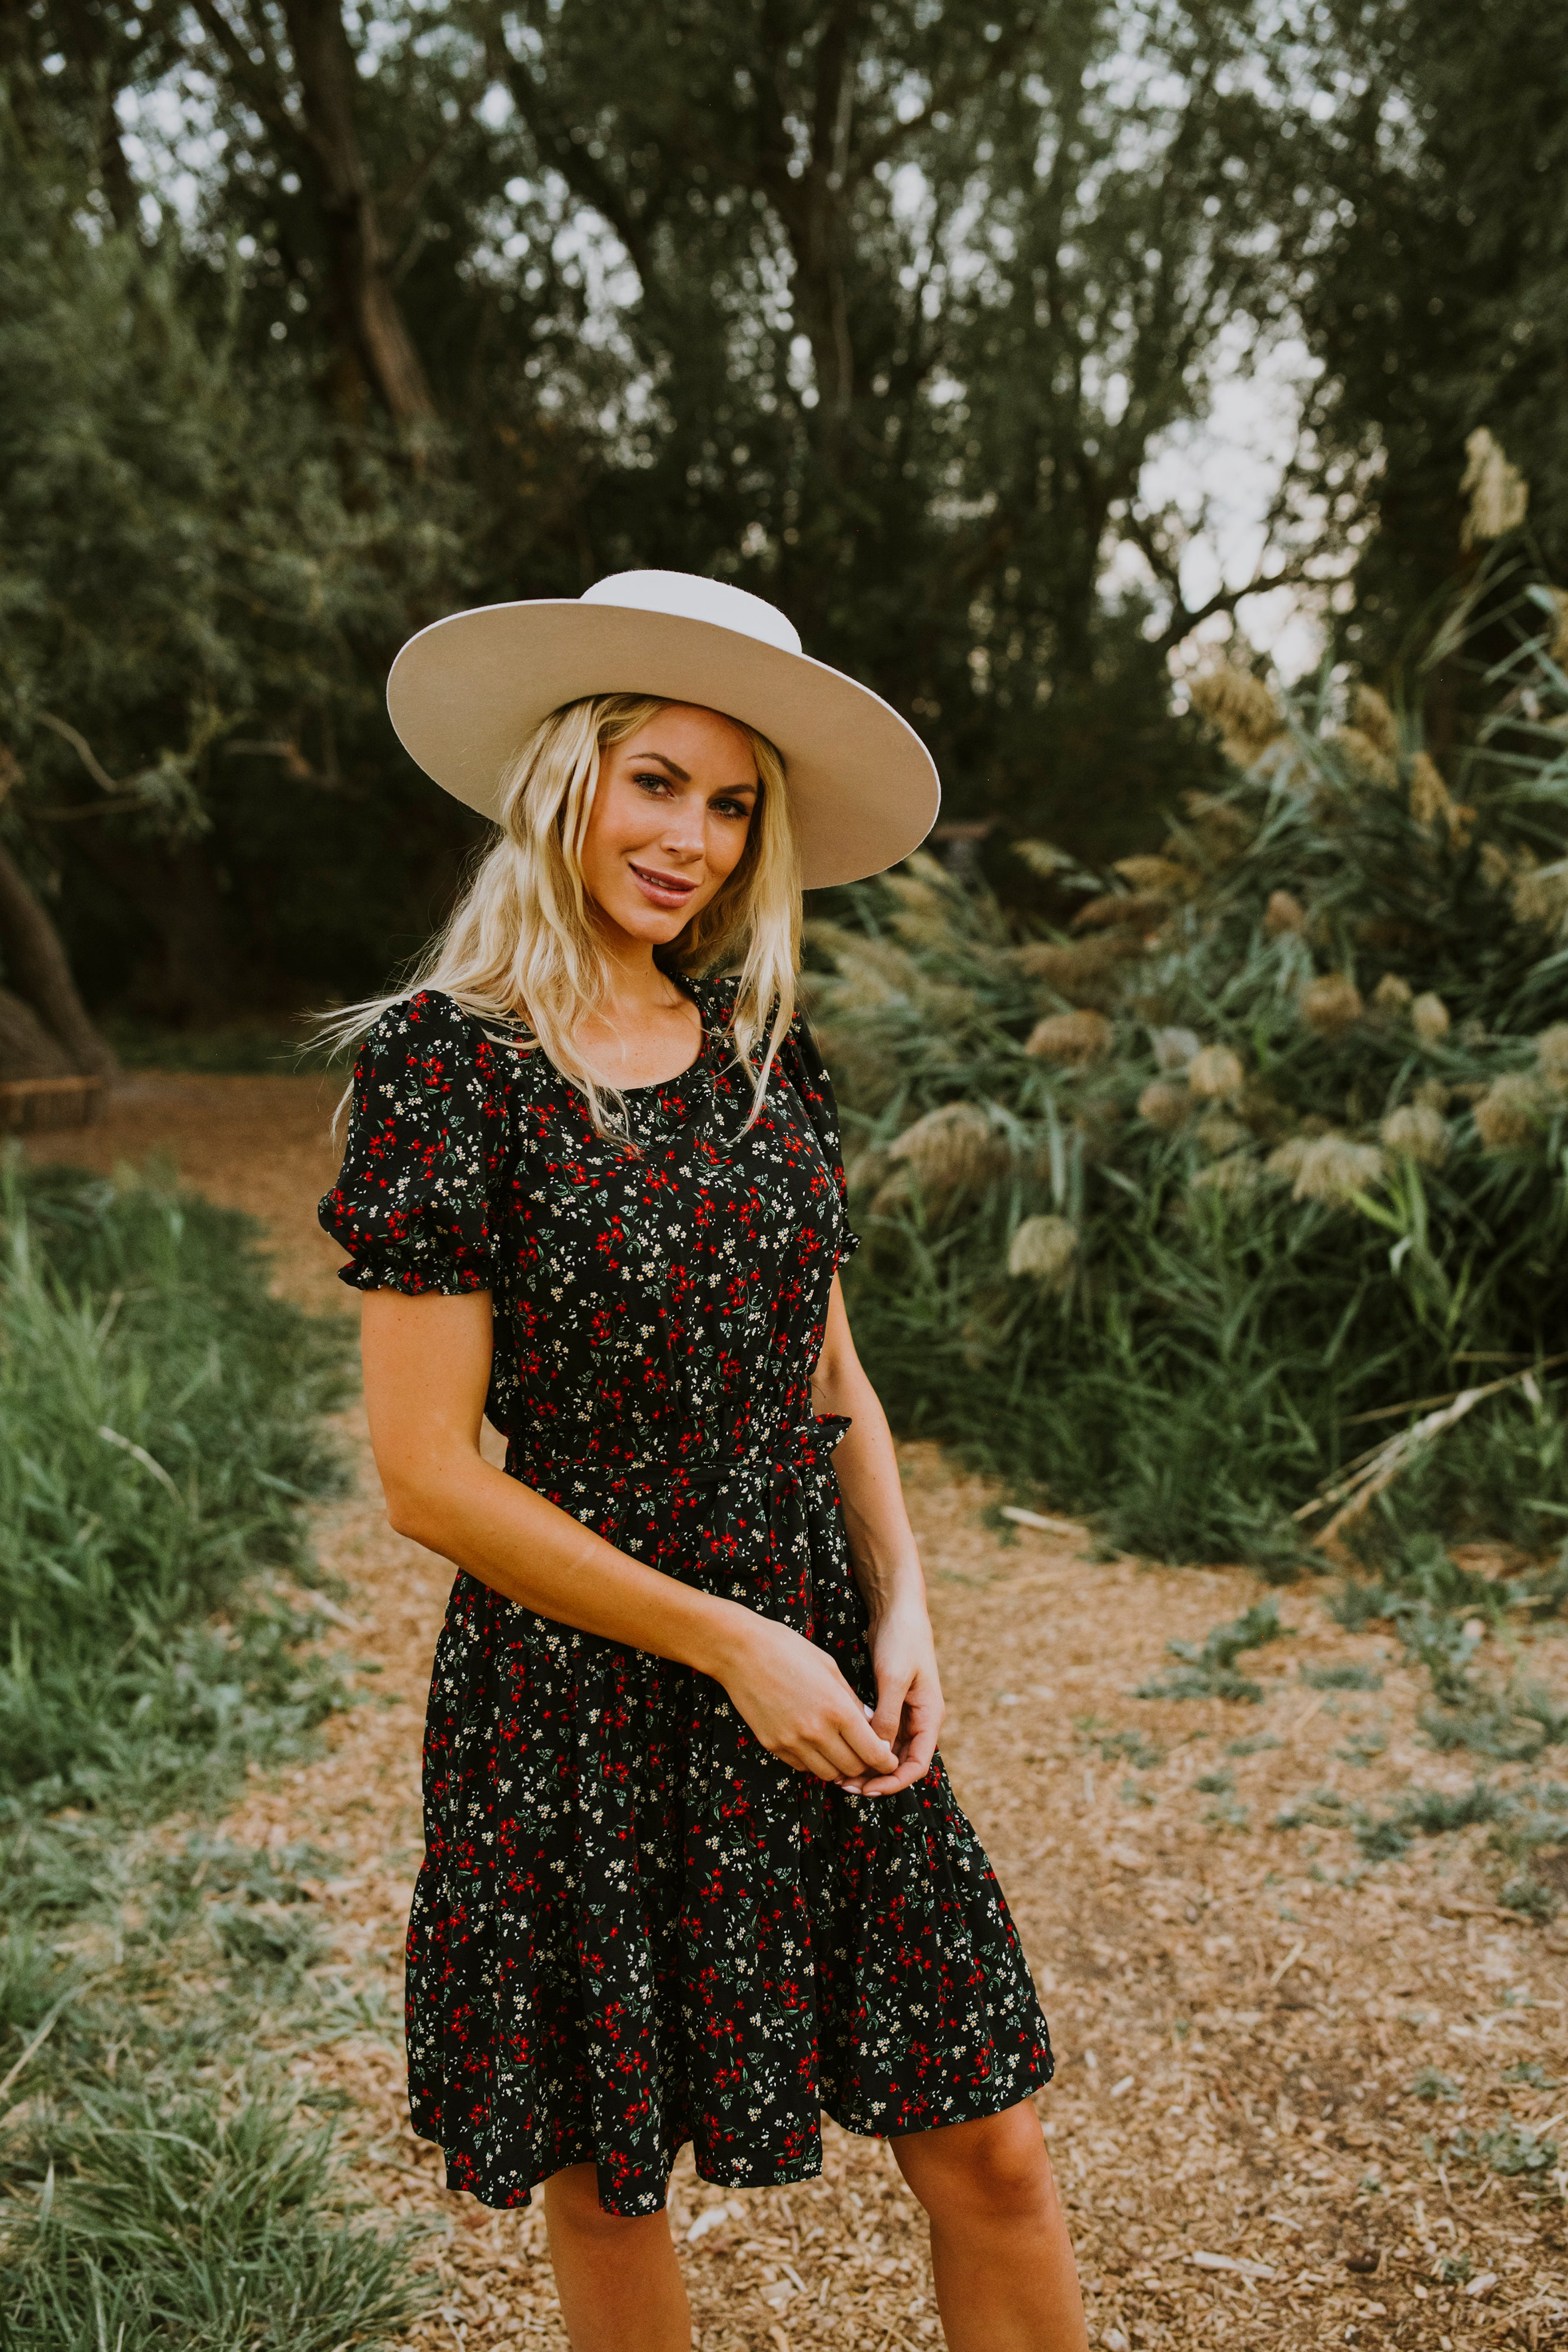 fall outfits, outfit ideas, dresses, cute fall outfits, midi dress, midi dress outfit, fall 2020, modest clothing, tiered midi dress with sleeves, black floral midi dress, midi floral dresses, modest midi dresses, cute fall outfits, family photo outfits, black midi floral dress, floral dress, women's dress, women's midi dress, women's fashion, floral midi dress for wedding, Utah Boutique, outfit ideas, tiered midi dress